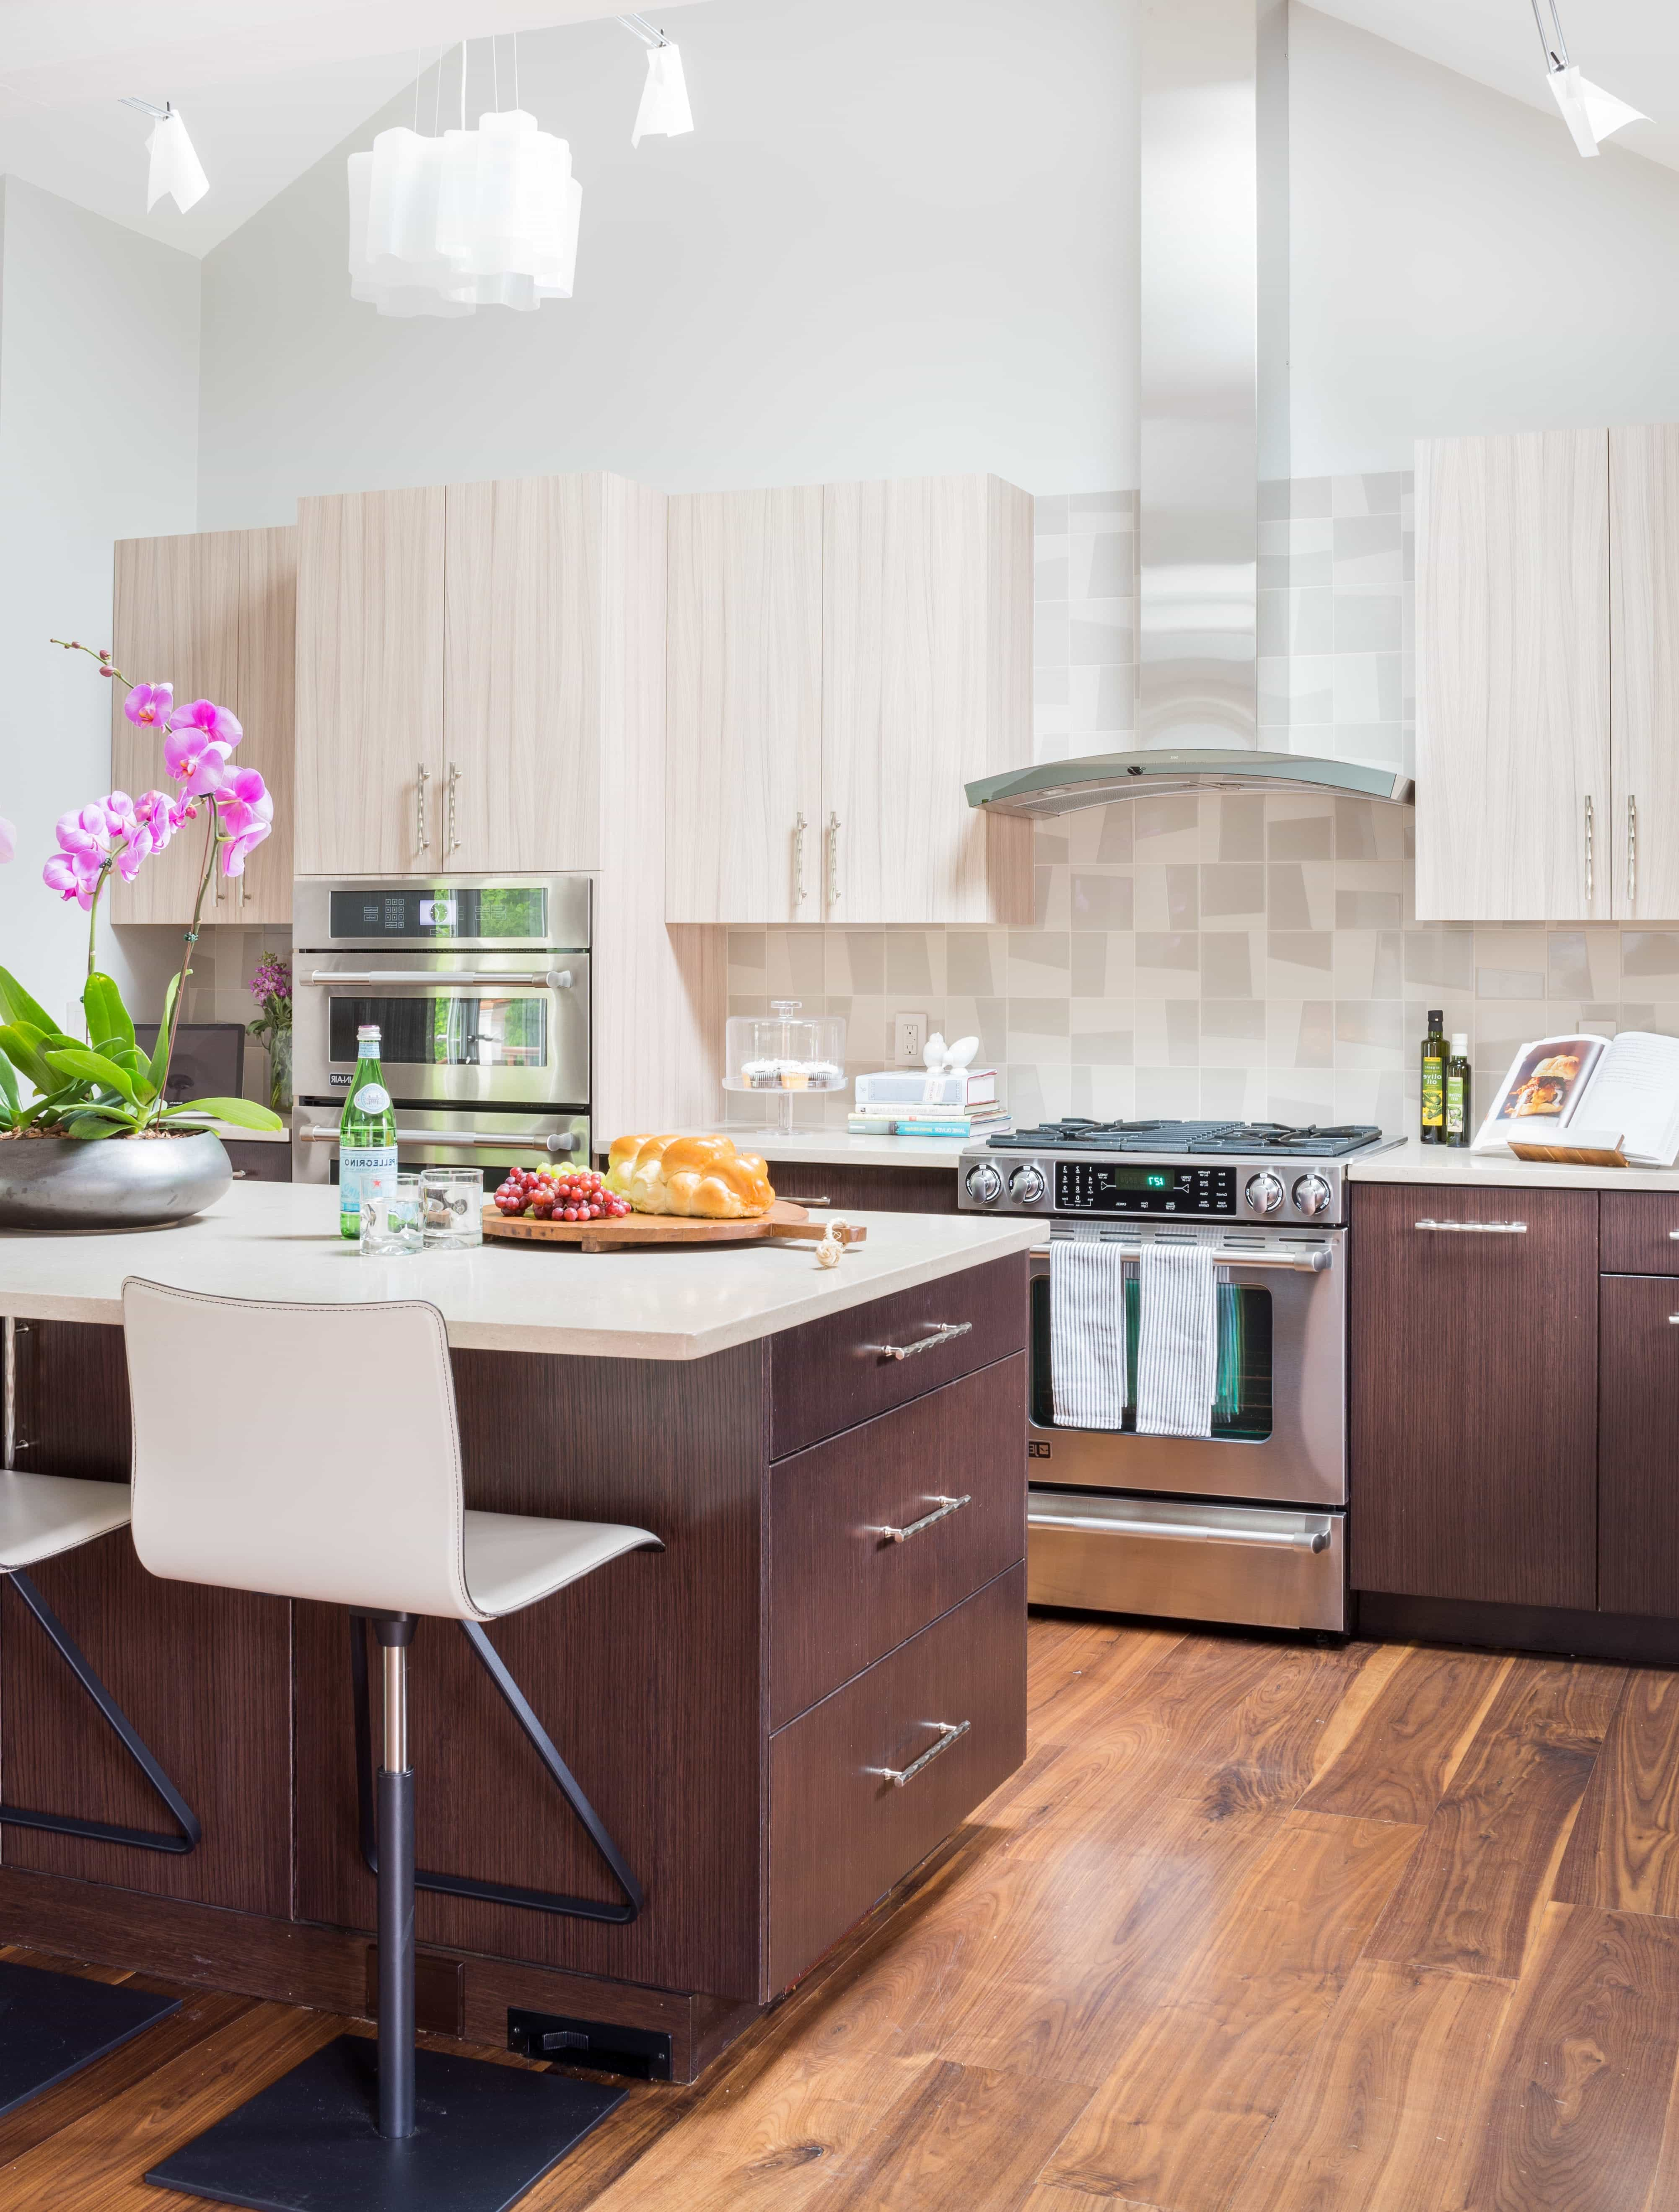 Attractive Midcentury Modern Kitchen With Two Toned Cabinets (Image 5 of 26)